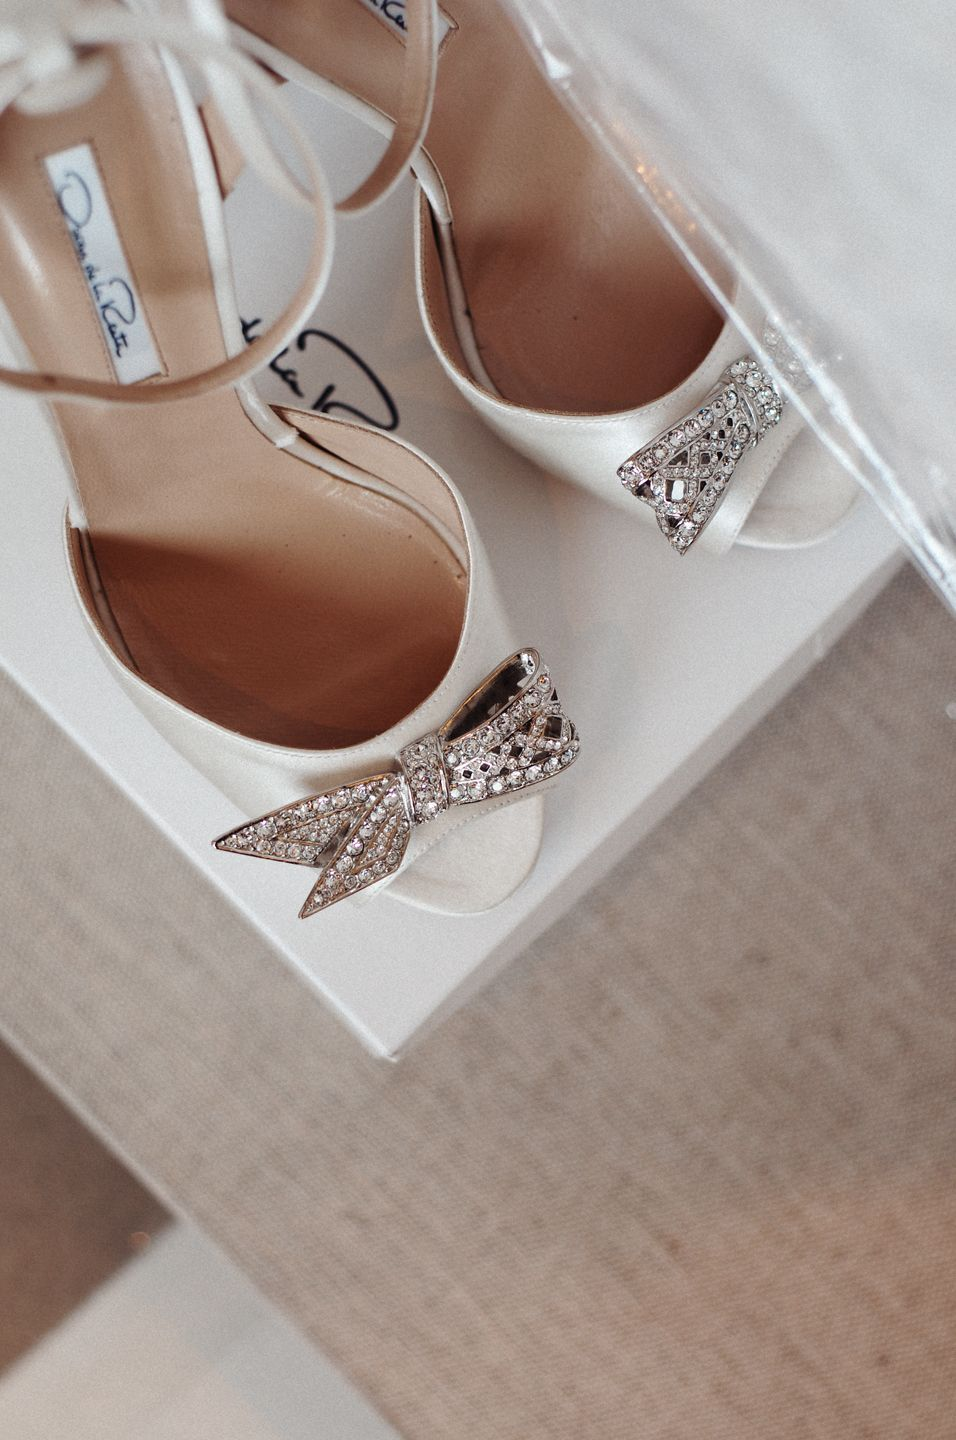 ls-ru imagesize:956x1440 @@ 1000+ images about zapatos on Pinterest | Wedding shoes, Sandals and Rene caovilla